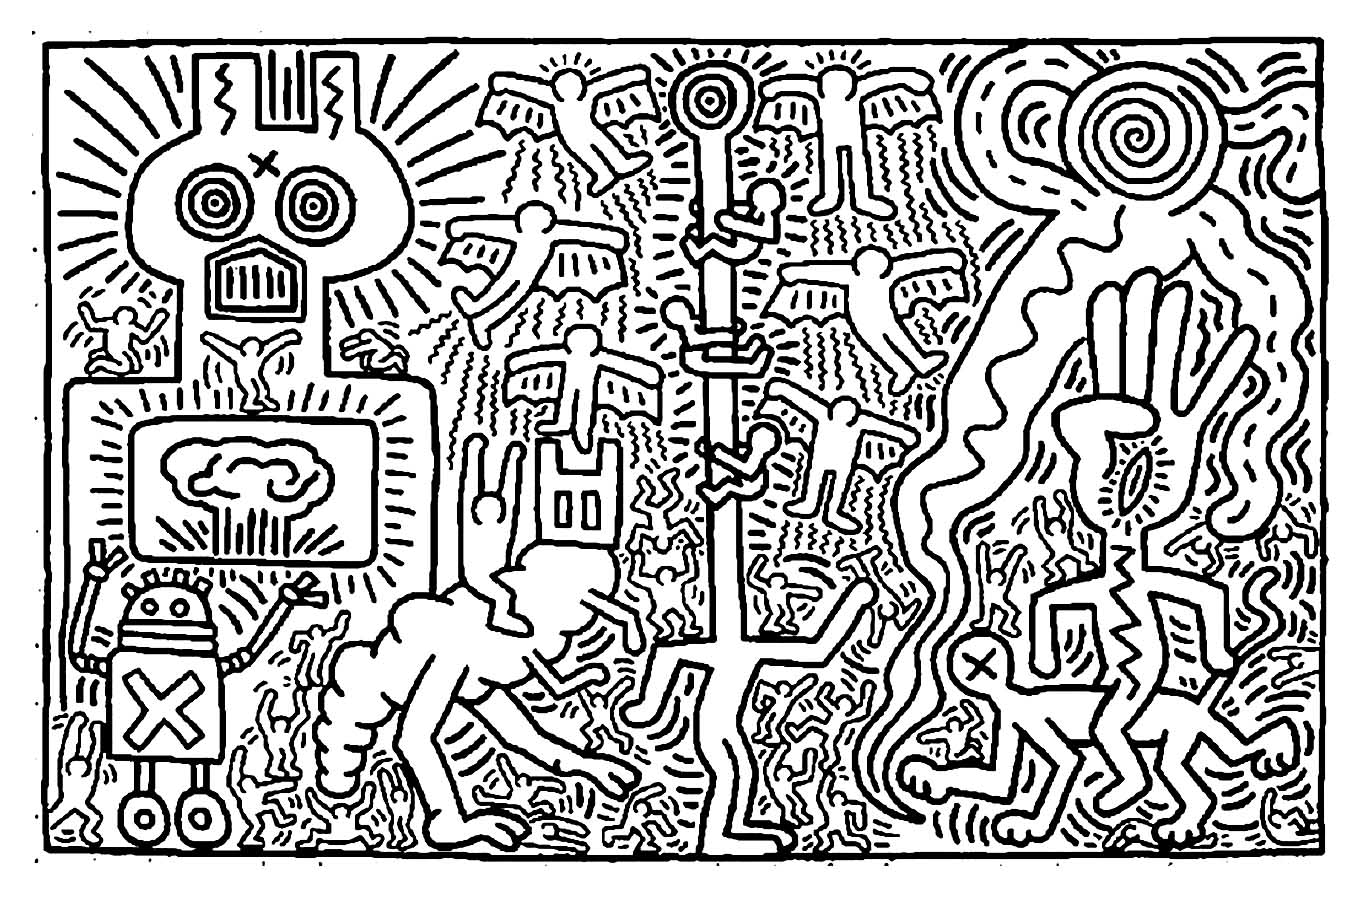 Uncategorized Keith Haring Coloring Pages keith haring 2 master pieces coloring pages for adults justcolor image with pop art artist from